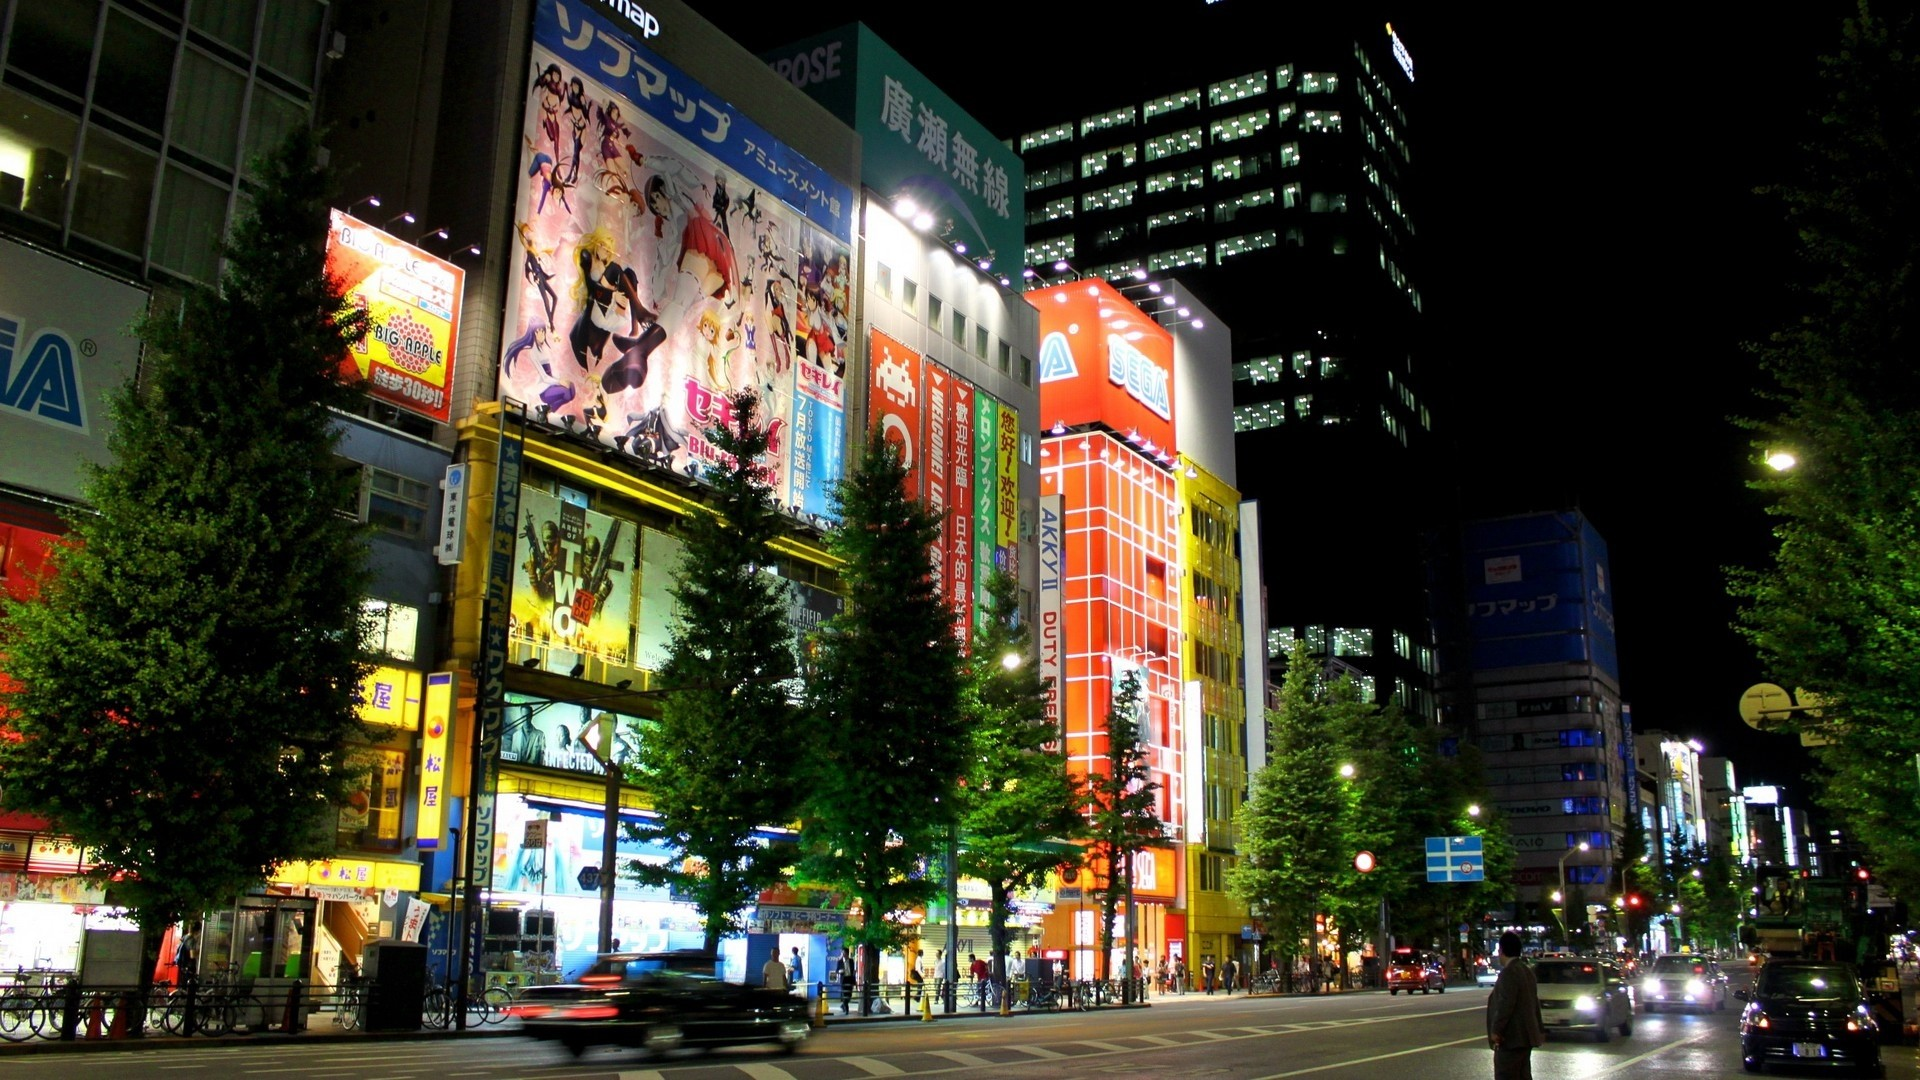 japan-city-streets-wallpaper-2.jpg (1920×1080) | XB1133 Perspective  Building Project | Pinterest | Perspective